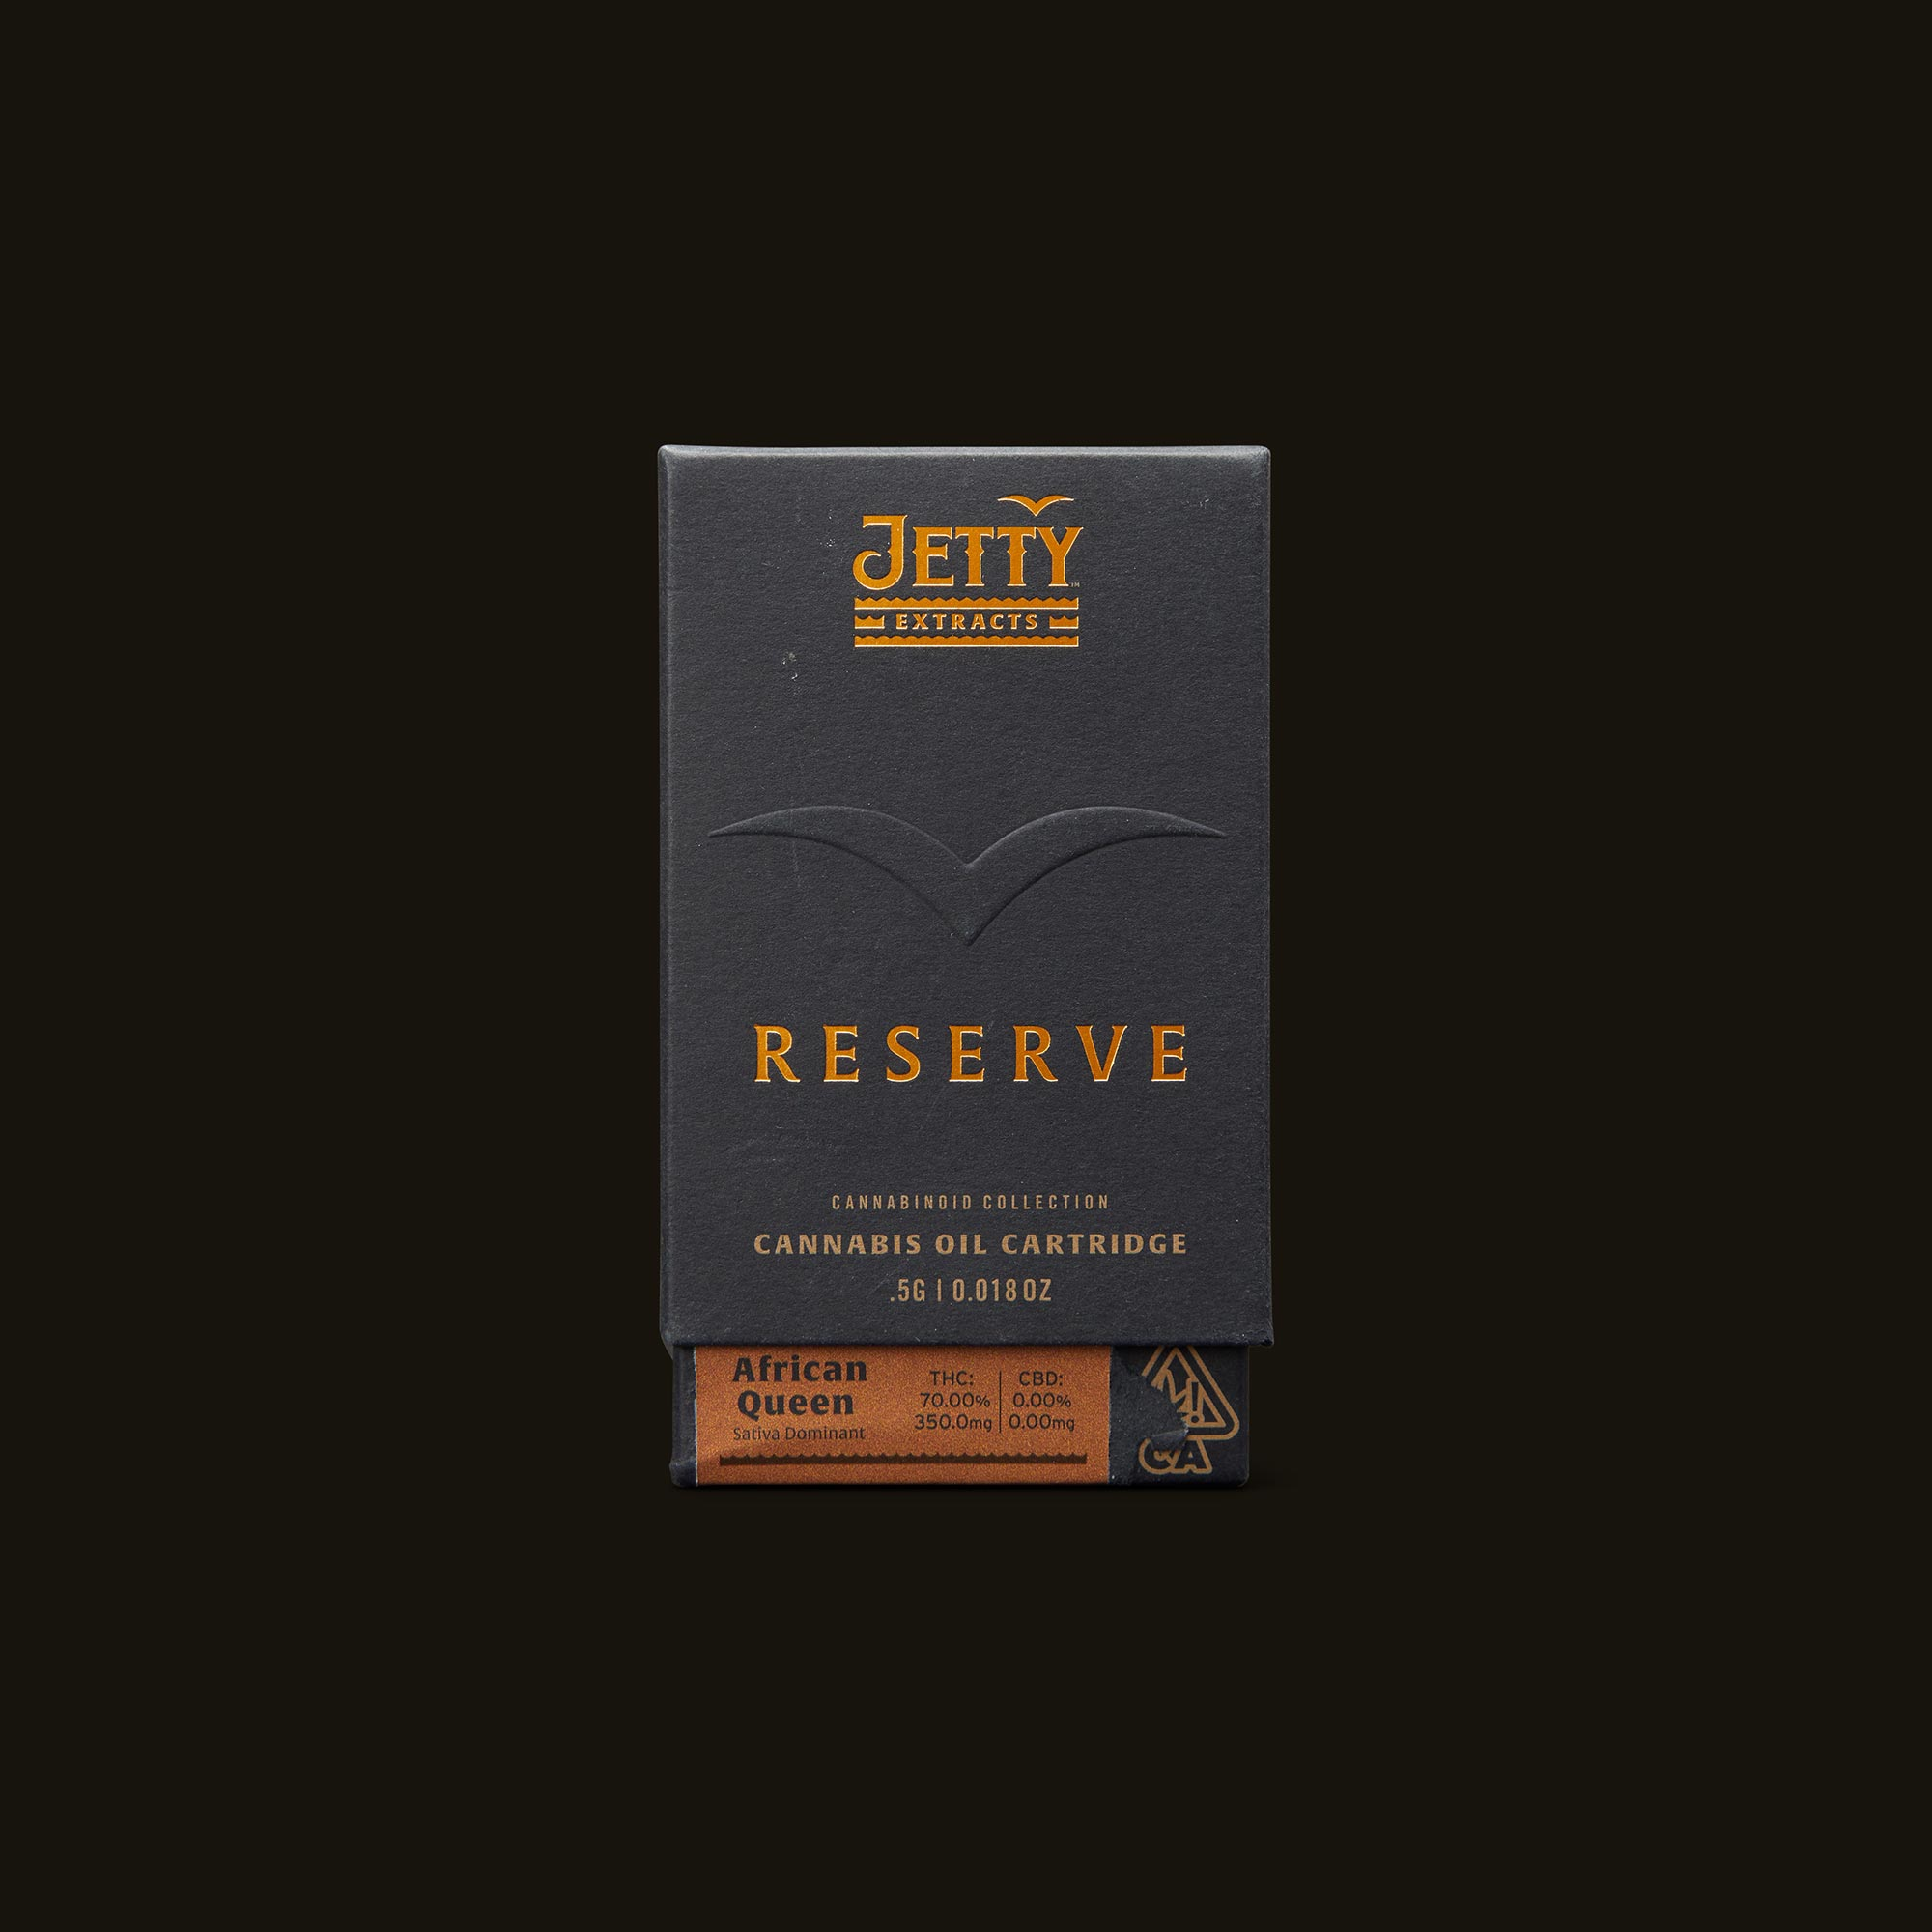 Jetty Extracts Reserve Vape Cartridge - African Queen Front Packaging